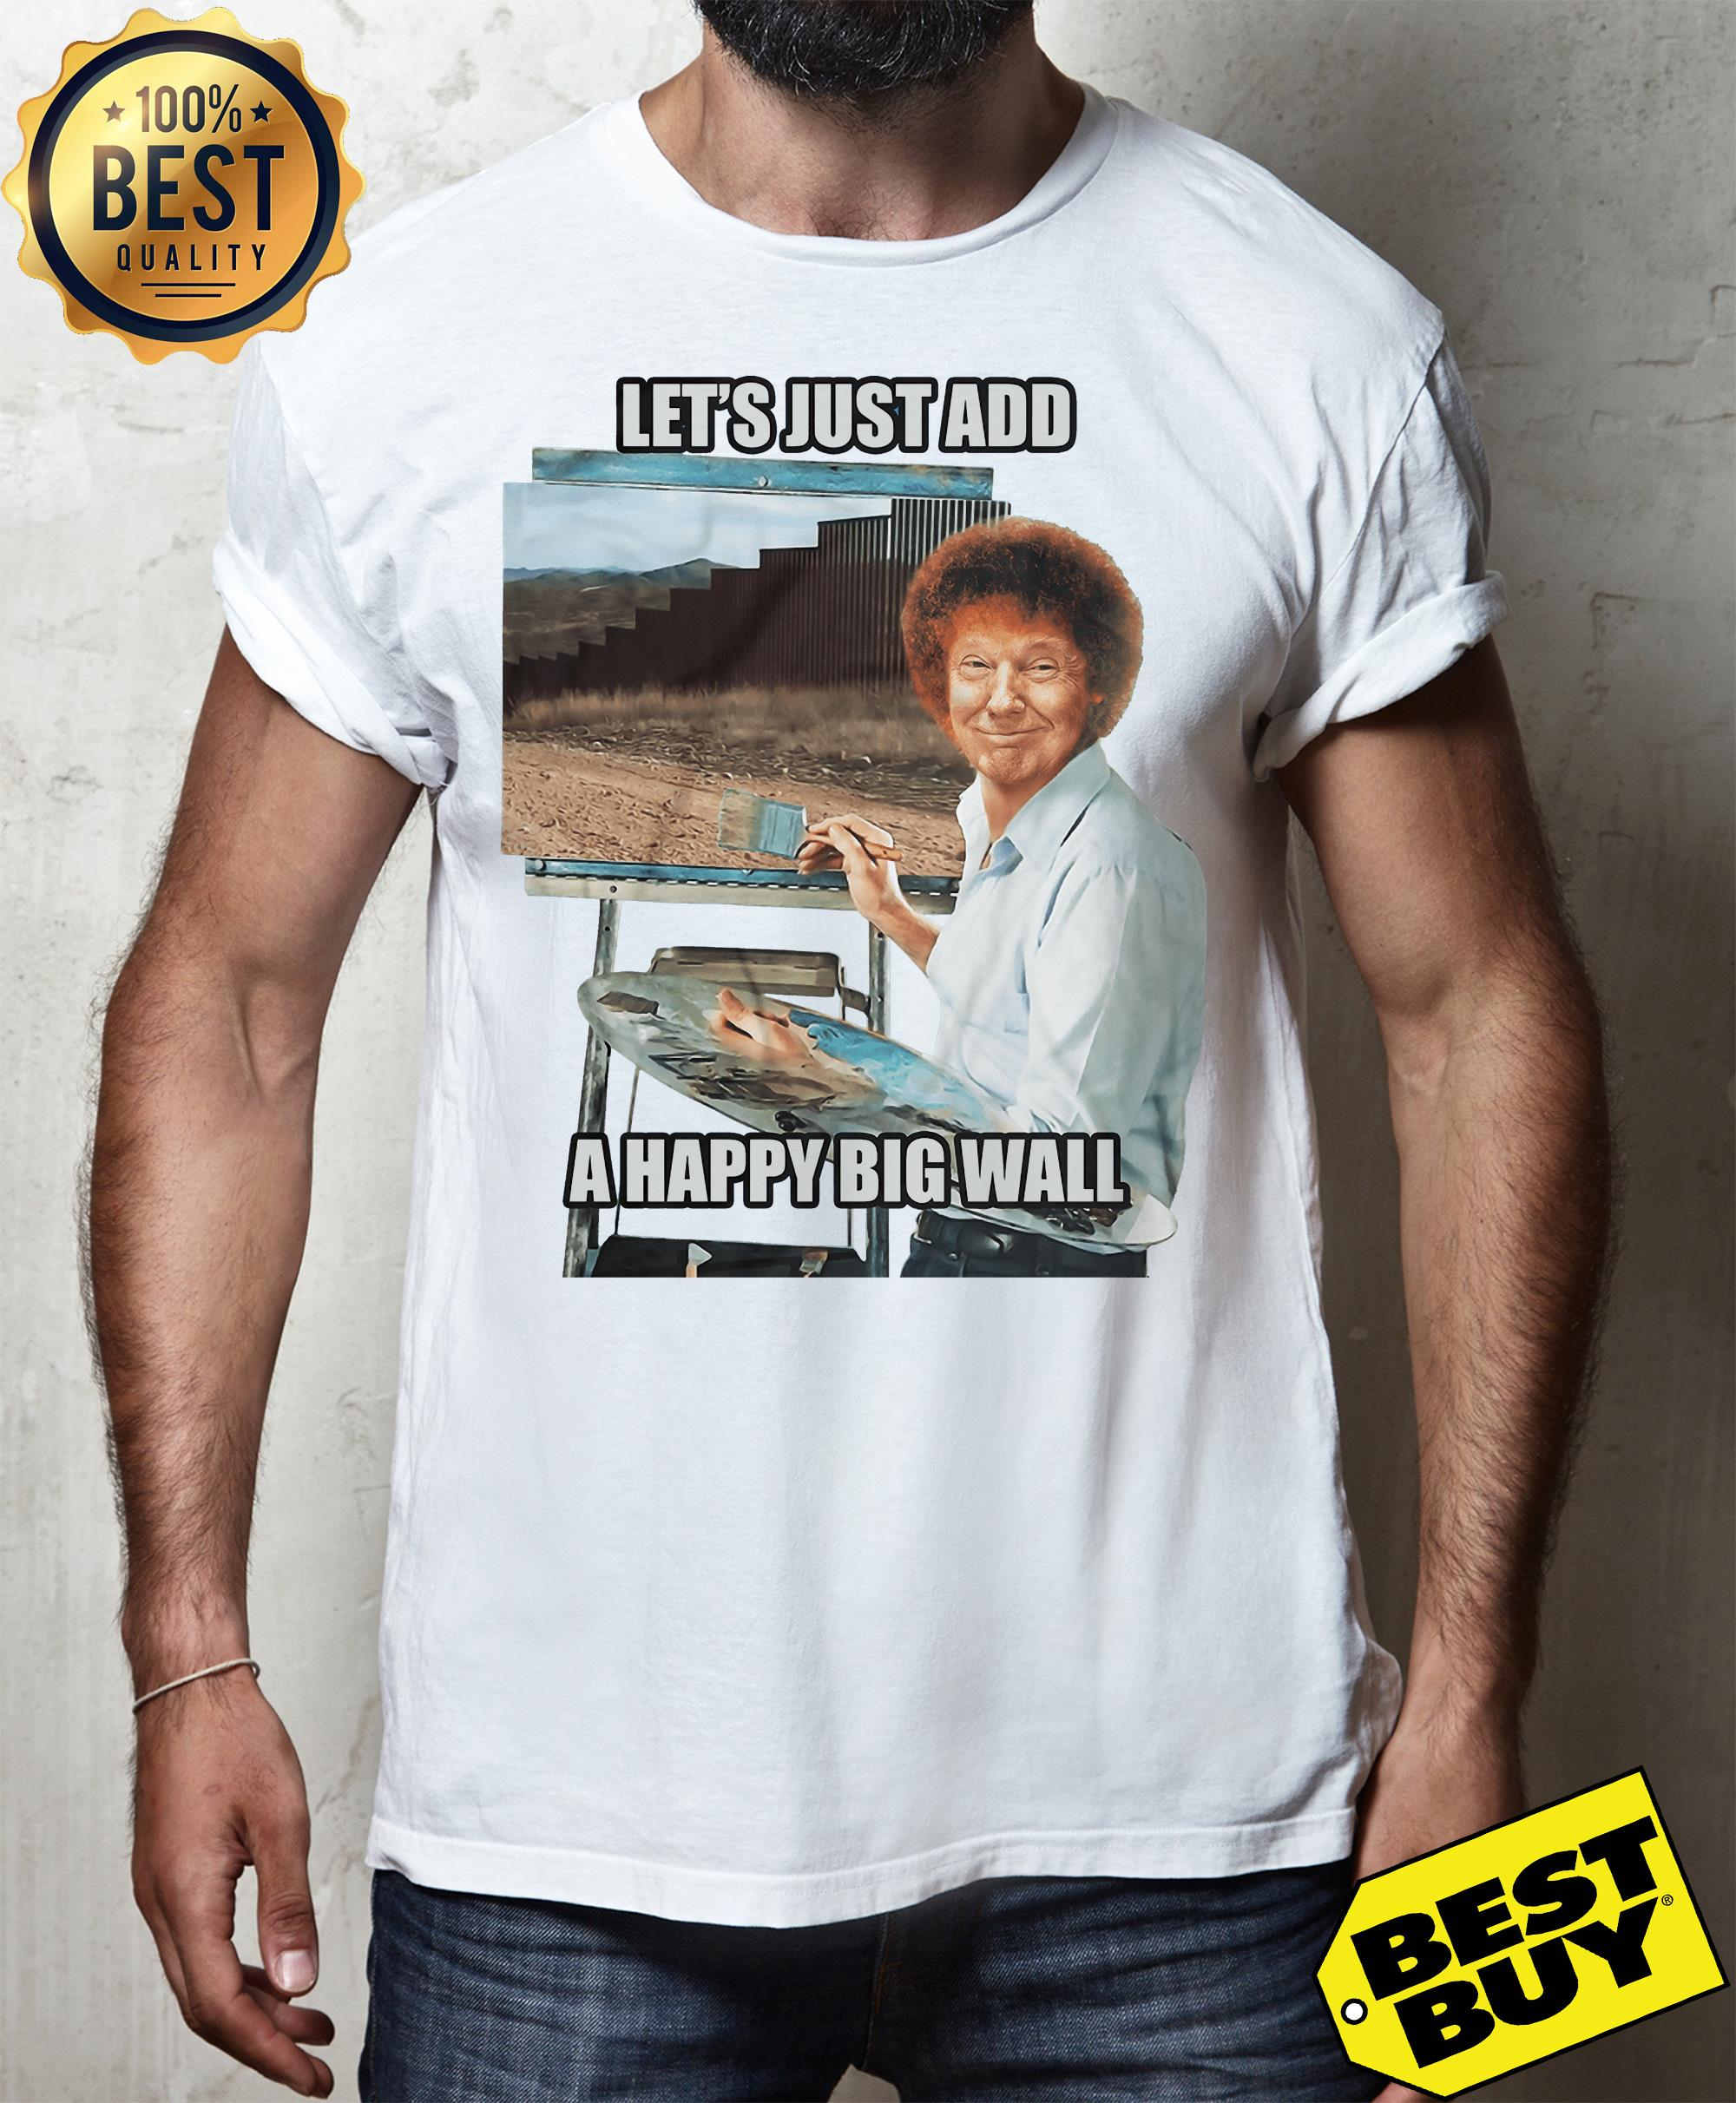 Bob Ross Trump the painter of the wall let's just add a happy big wall tank top